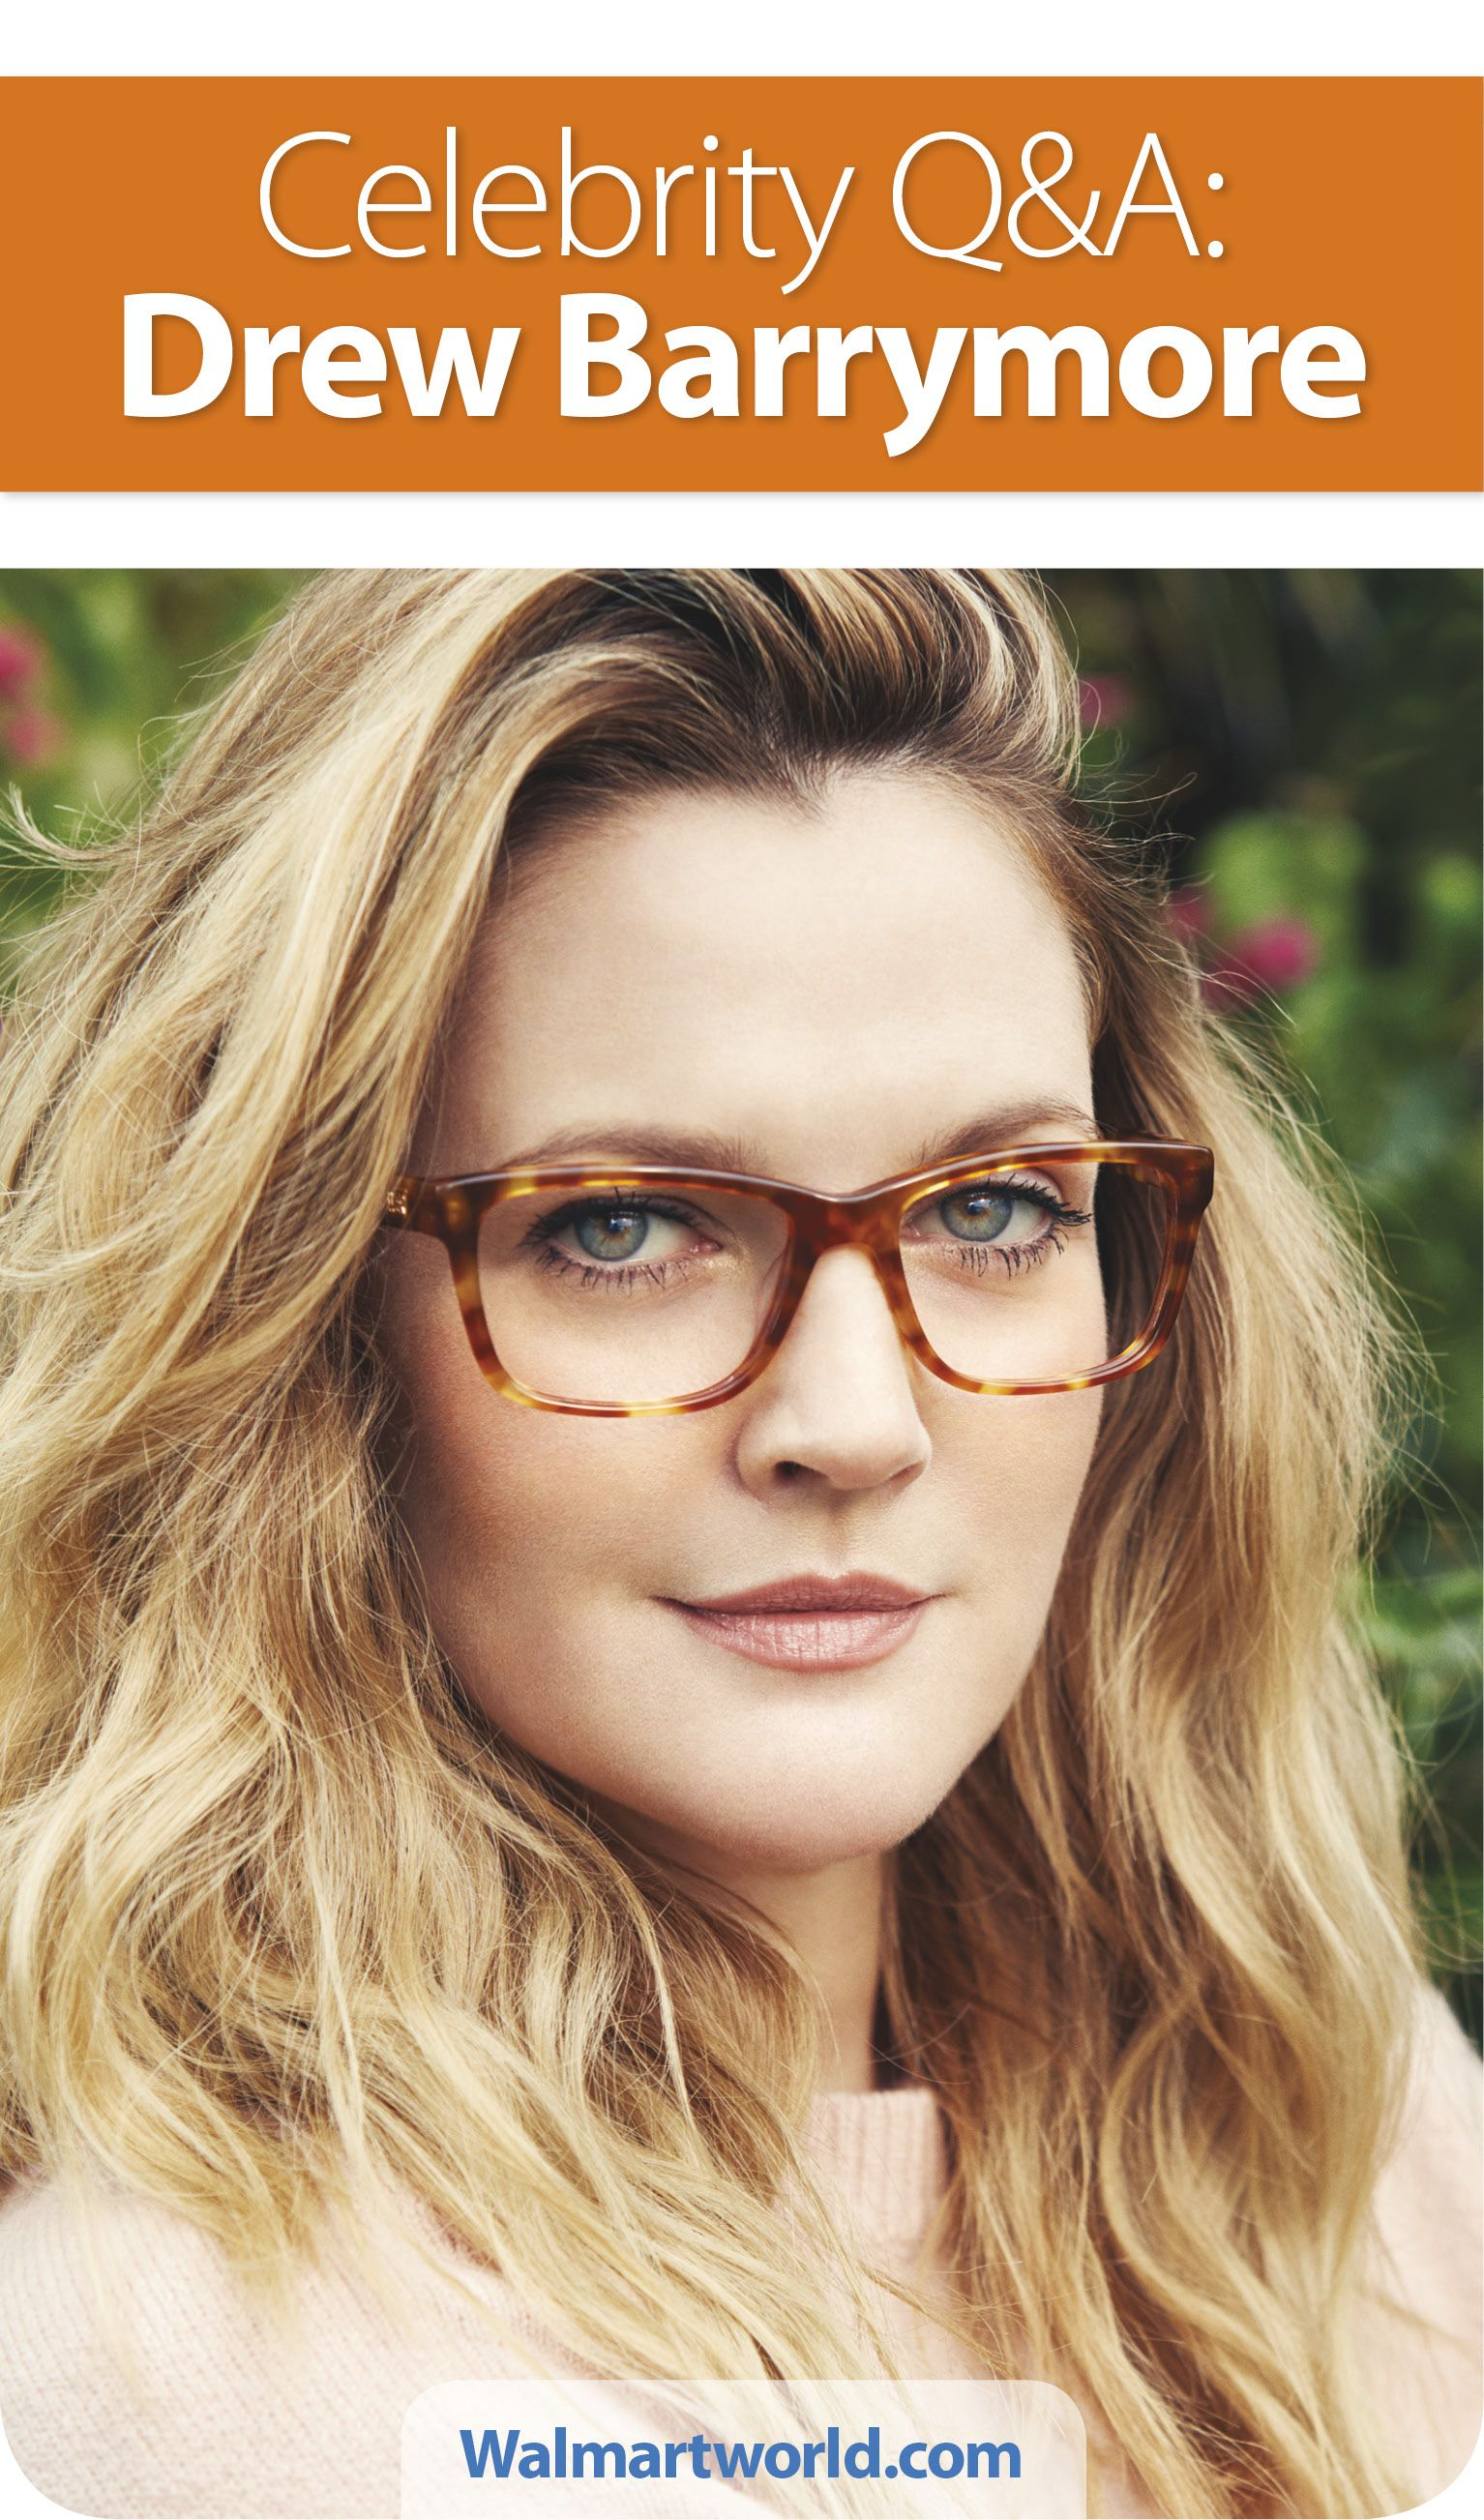 25a6a15364f Drew Barrymore dishes on her new Flower eyewear sold exclusively at Walmart